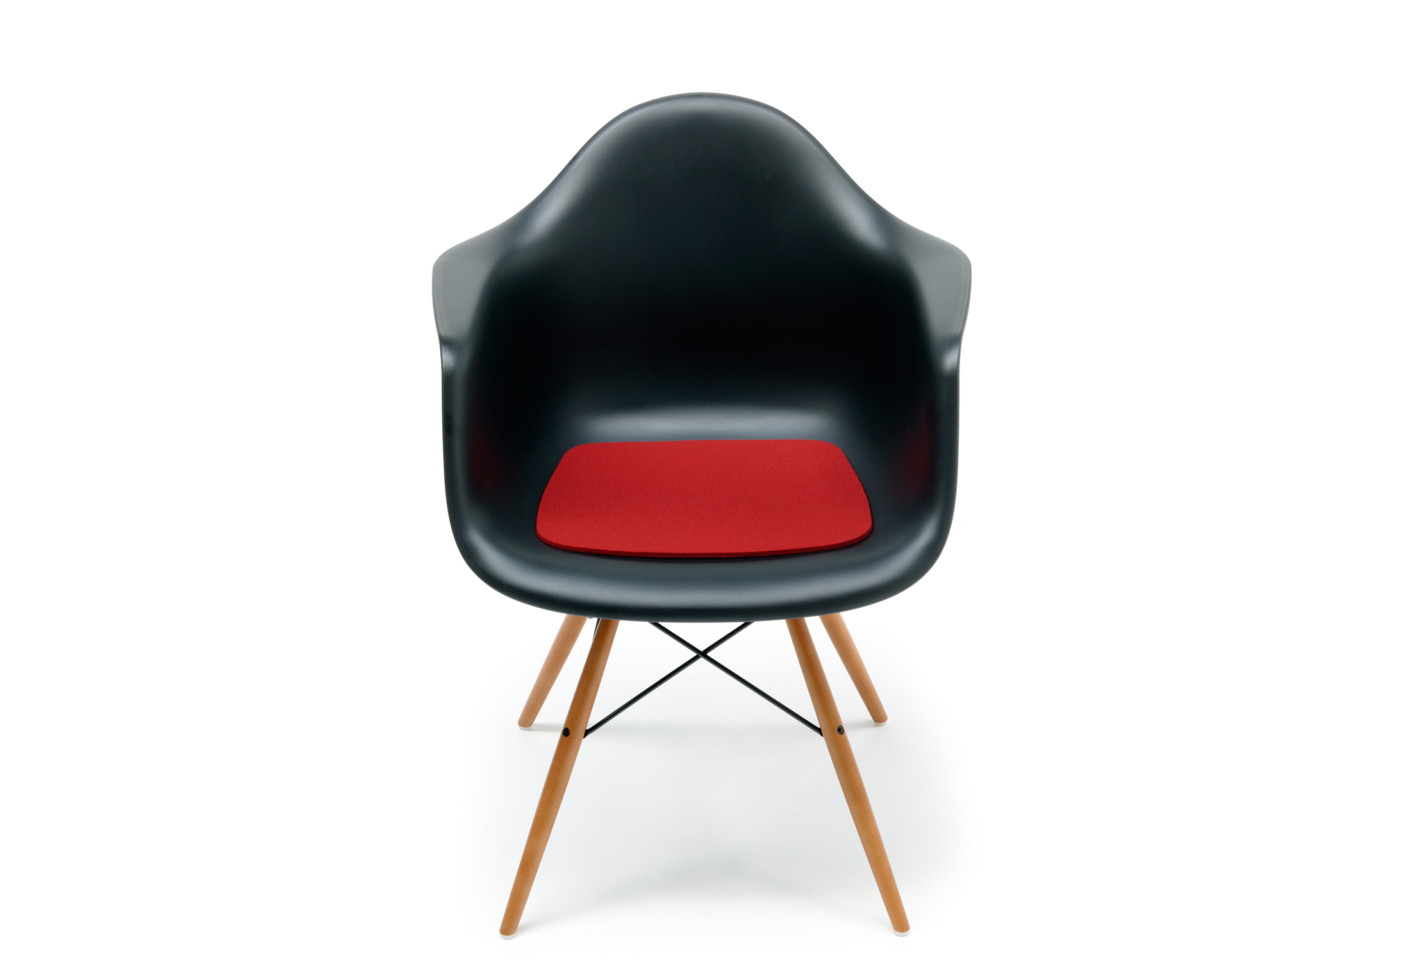 sitzkissen f r den eames plastic armchair dar von hey sign stylepark. Black Bedroom Furniture Sets. Home Design Ideas